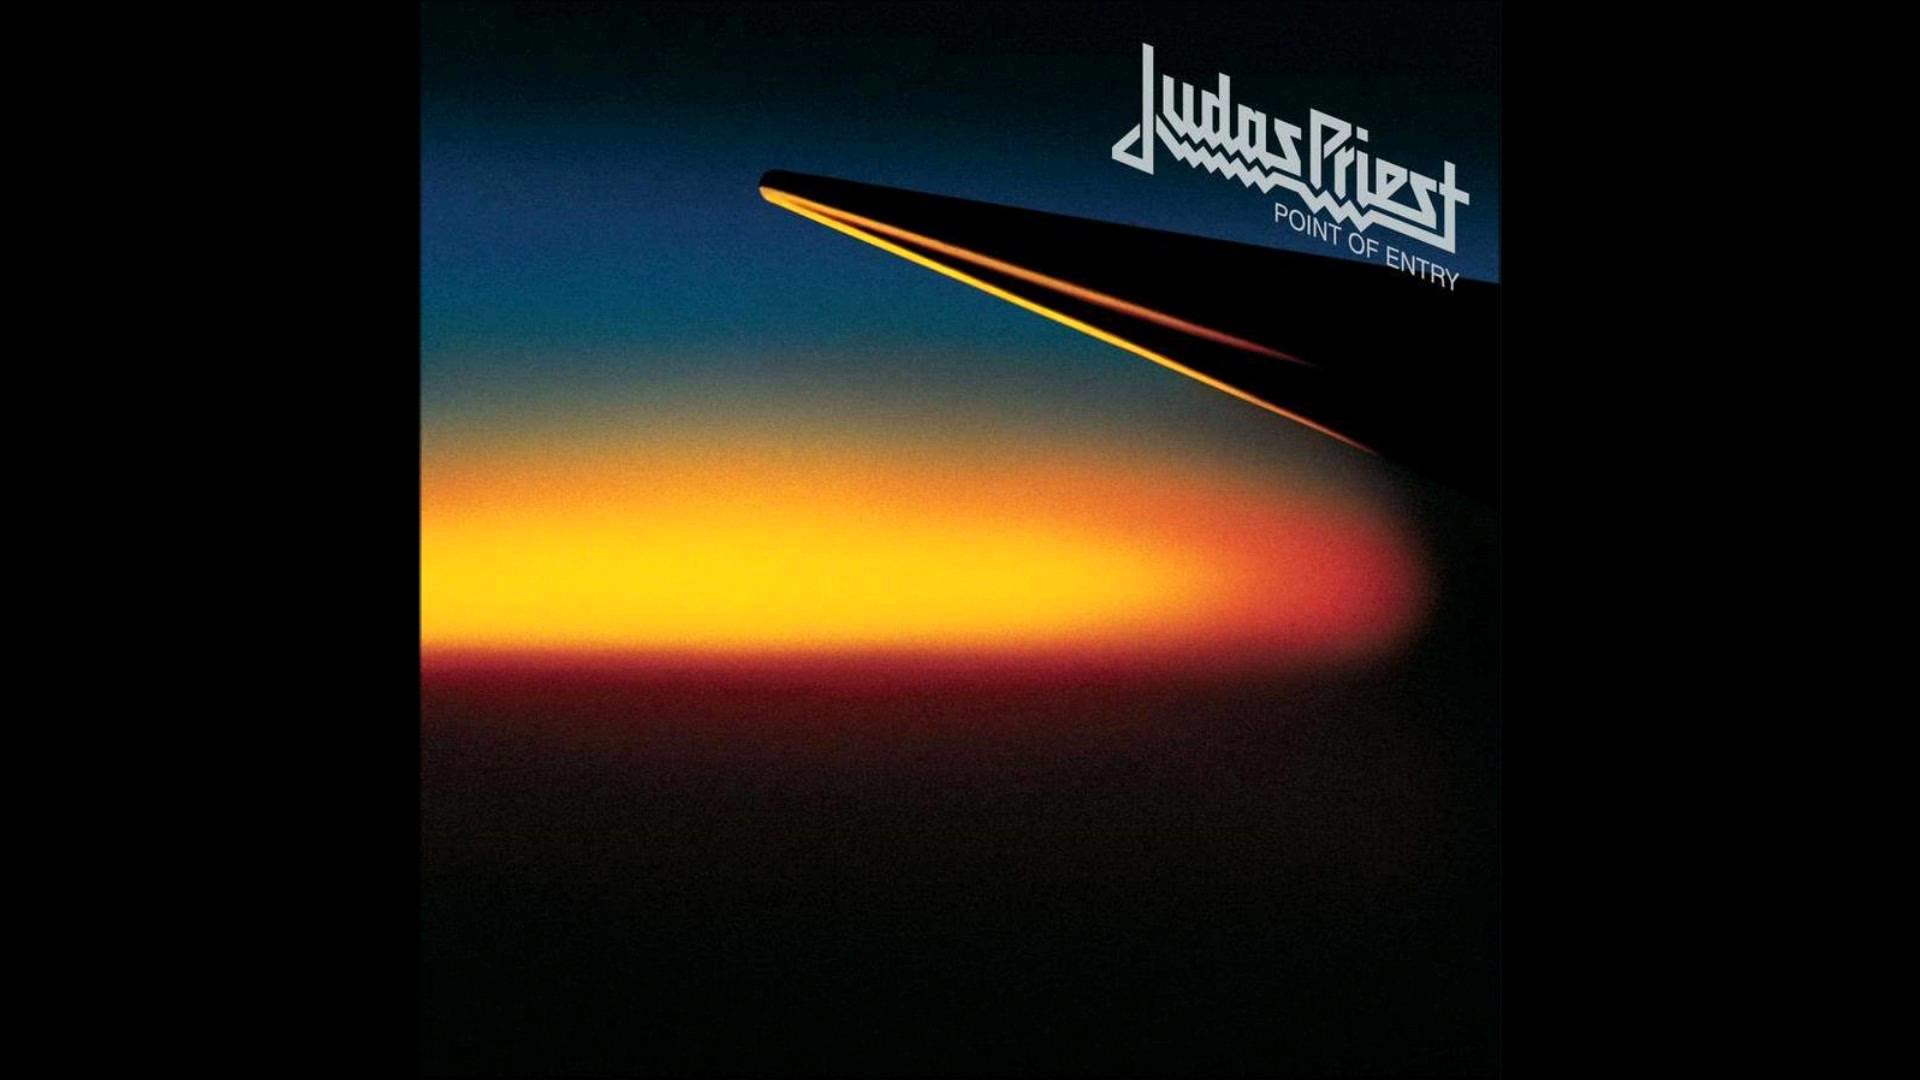 Judas Priest Wallpapers 45 Images